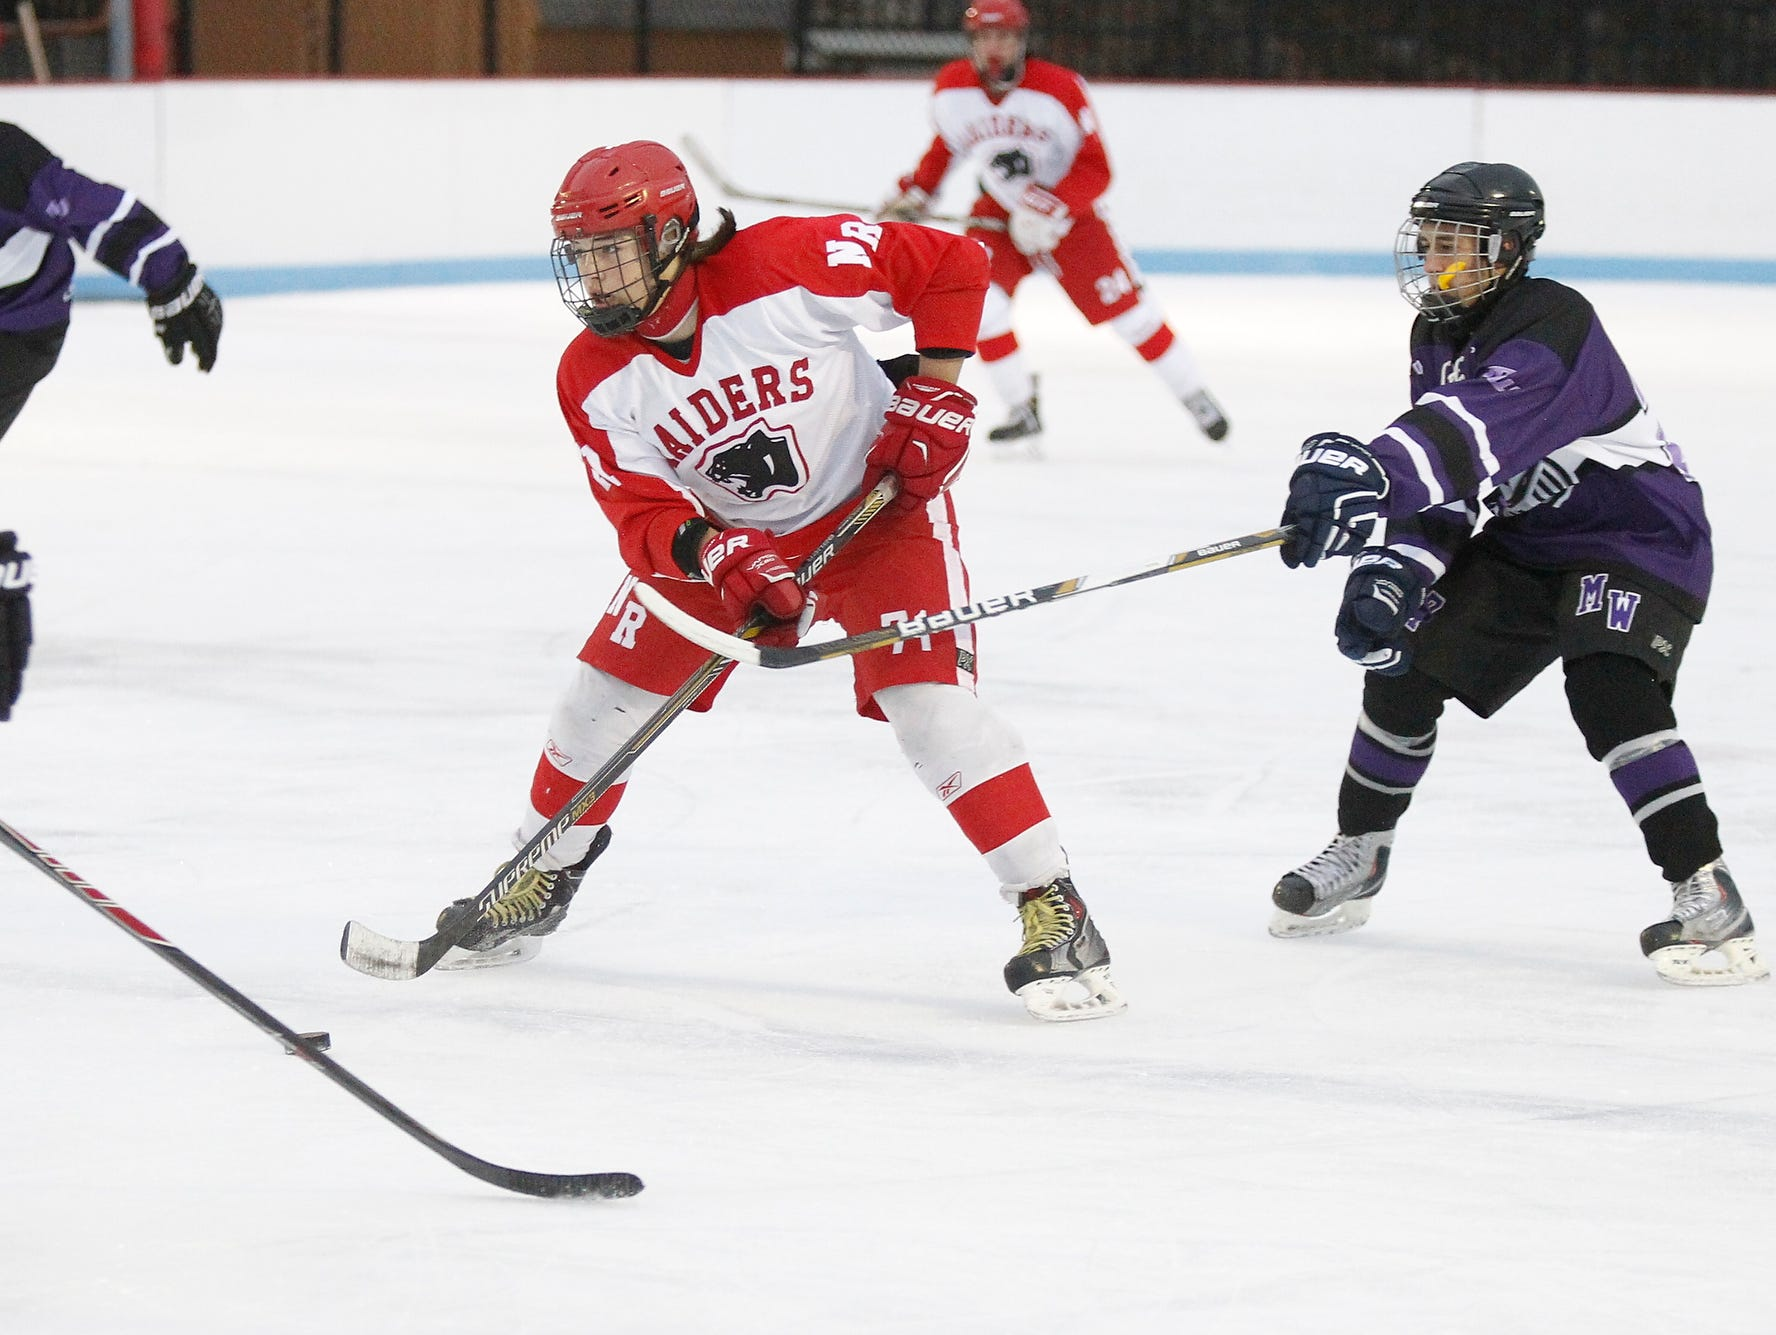 North Rockland's Jack Guerra (71) works the puck through the Monroe-Woodbury defense during the first annual Winter Classic Hockey Tournament at the Bear Mountain Ice Rink in Tompkins Cove on Friday, Dec. 18, 2015.